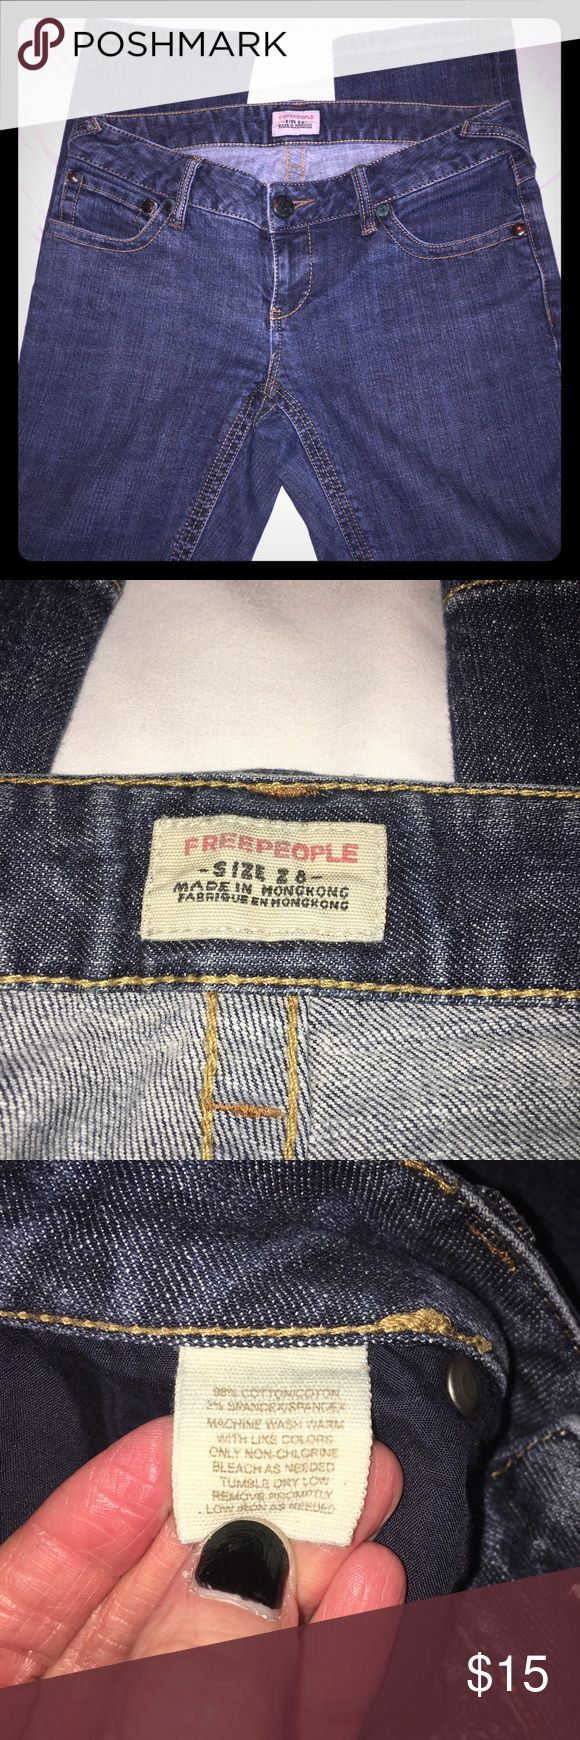 """{Free People} jeans {Free People} skinny jeans. Front double seam under zipper is partly unstitched (No Hole)(picture #5)The rest of jeans are in good condition. Size 8, 33 1/2"""" waist, 6 1/2"""" front rise, 13 1/2"""" rear rise, 32 1/2"""" inseam. Free People Jeans Skinny"""